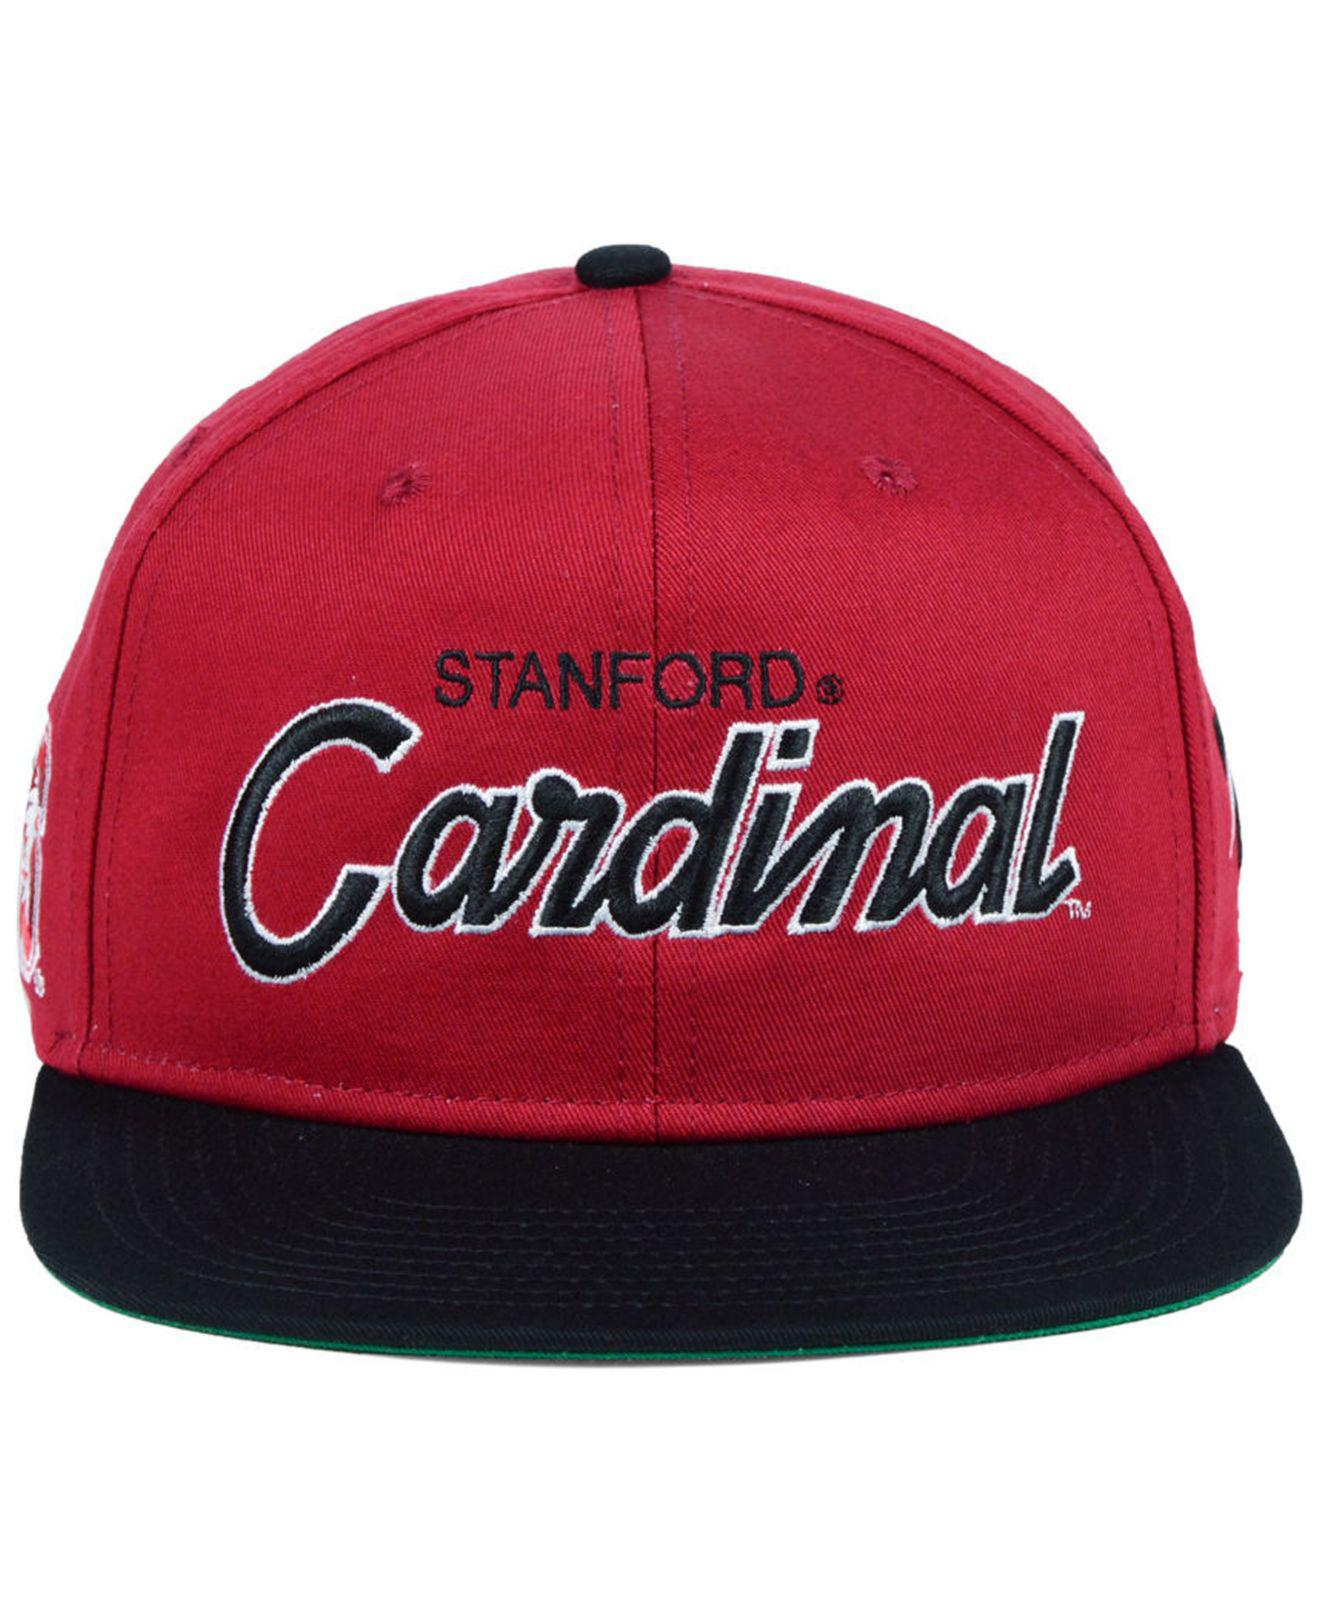 b3da4cb8 good lyst nike stanford cardinal sport specialties snapback cap in red for  men 94cad 89752